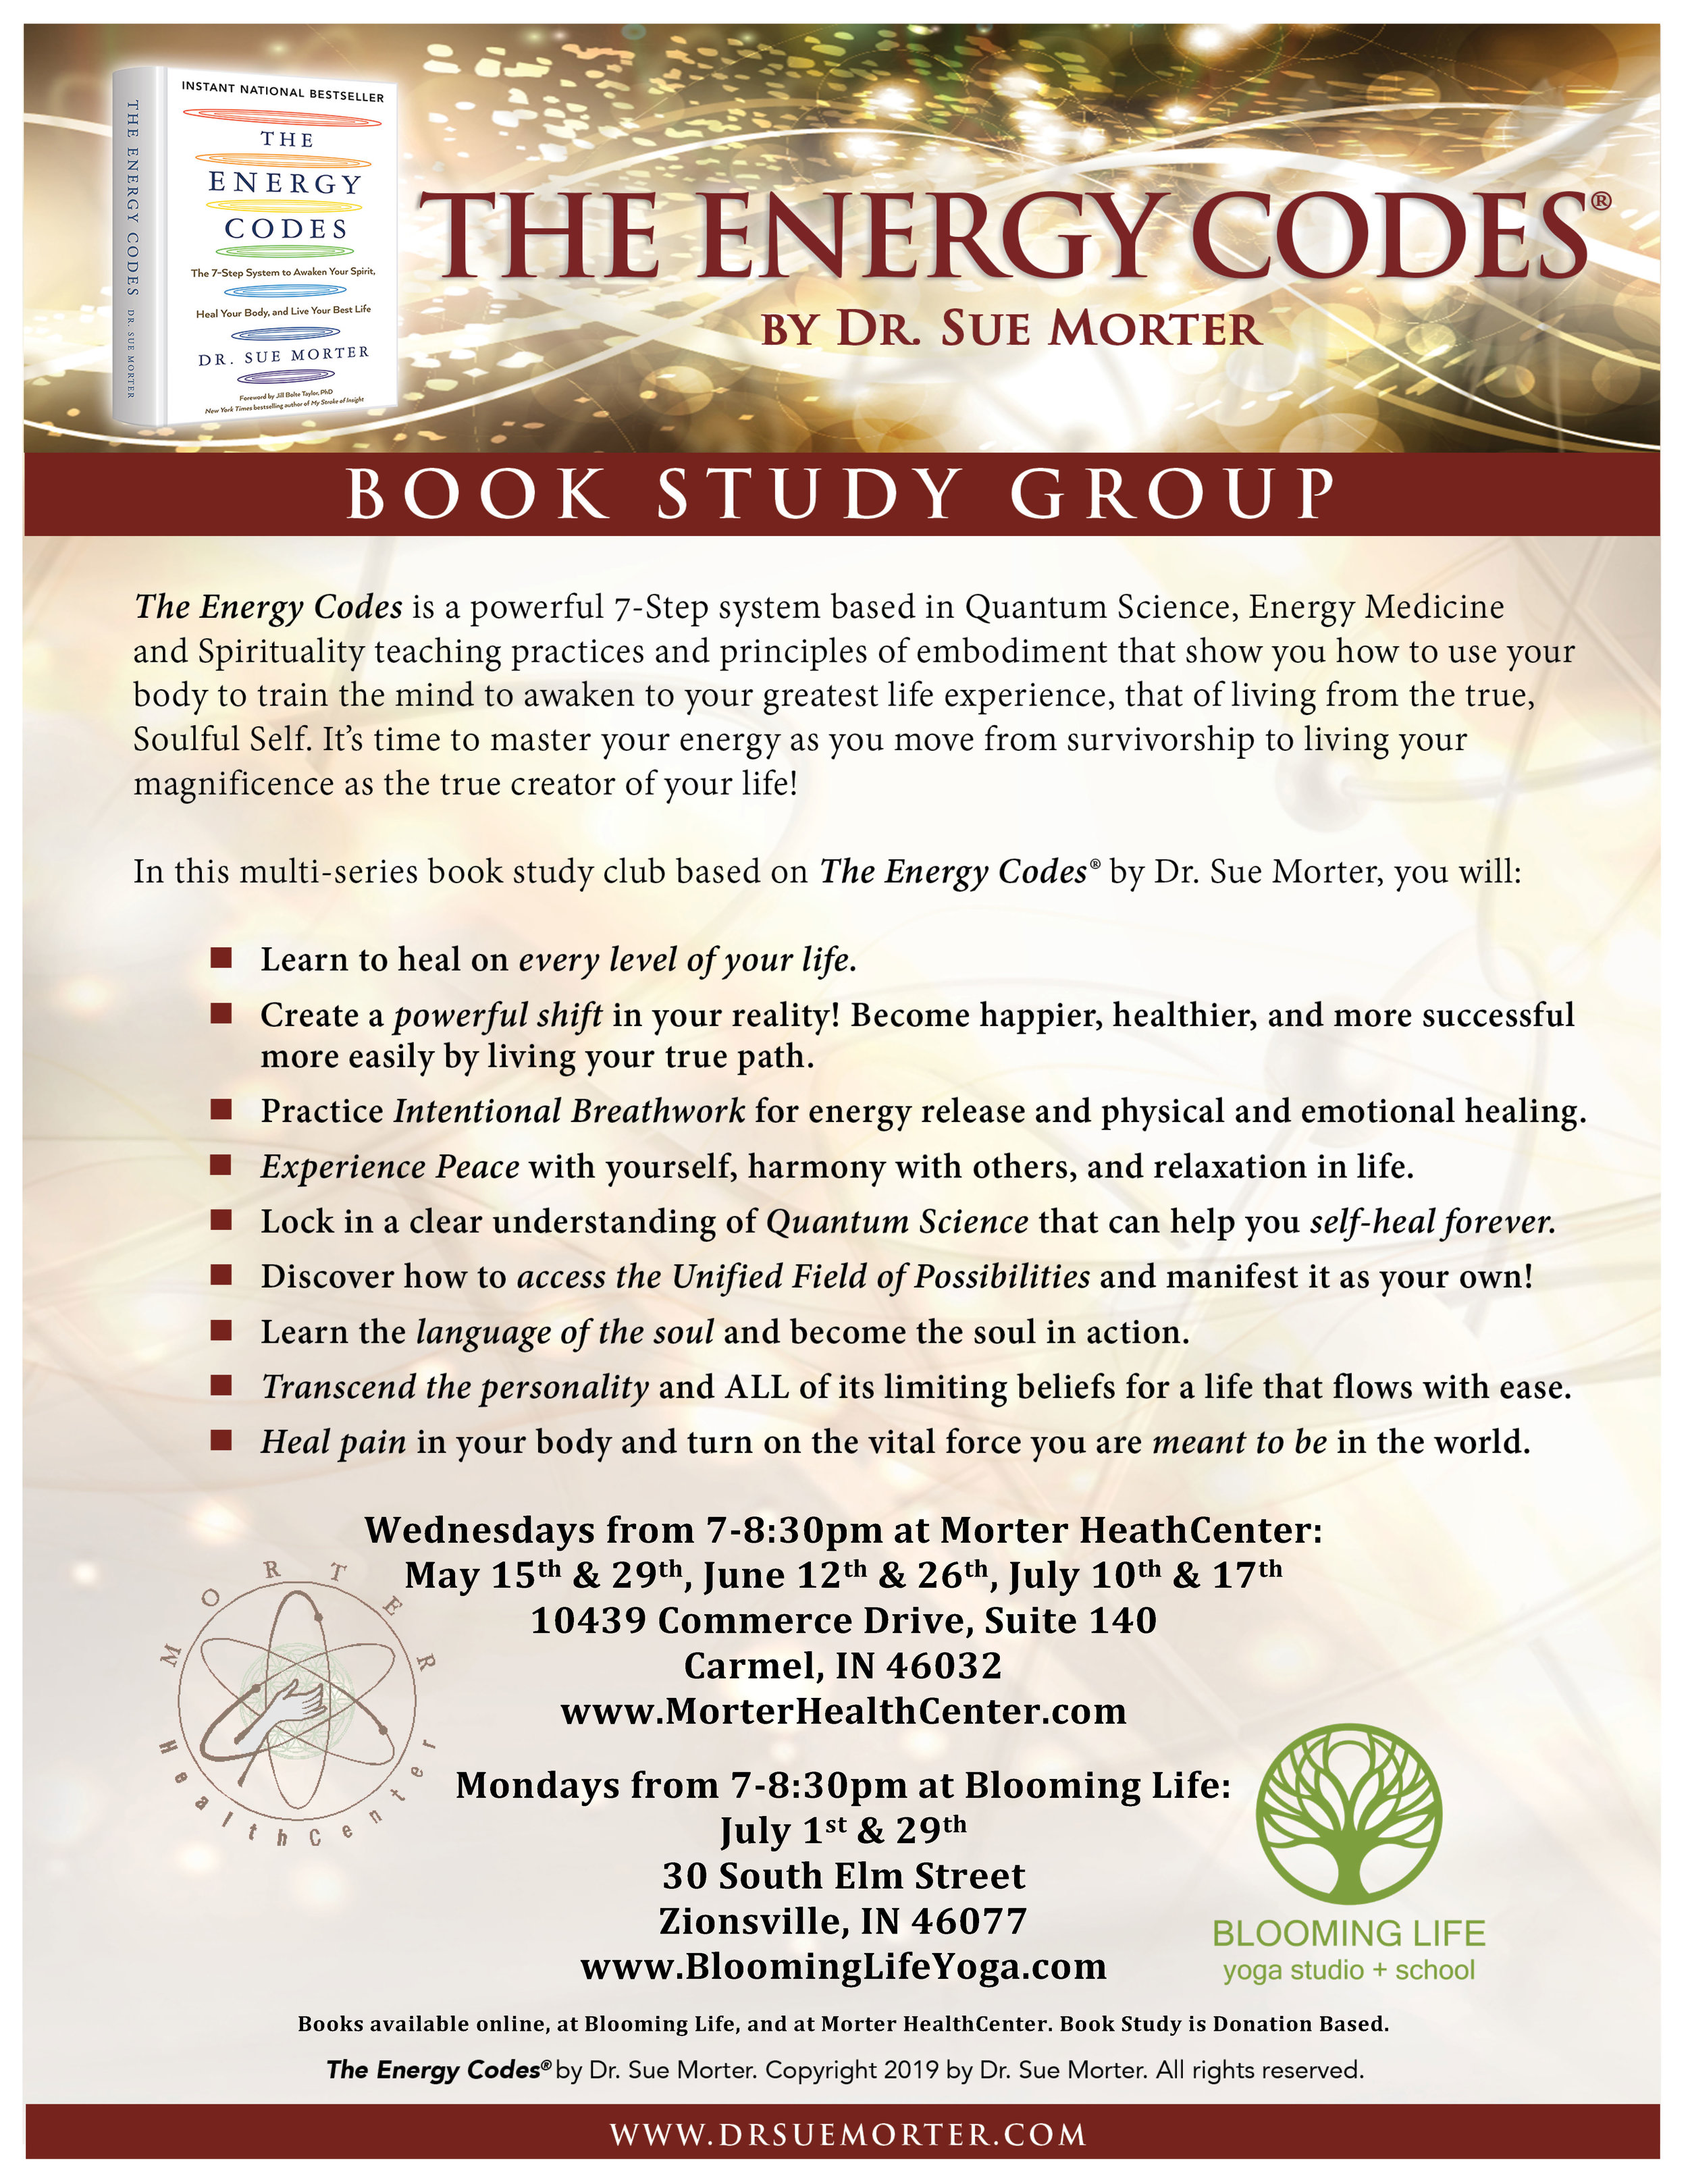 Dr Sue The Energy Codes Book Study Group Flyer 2019.jpg